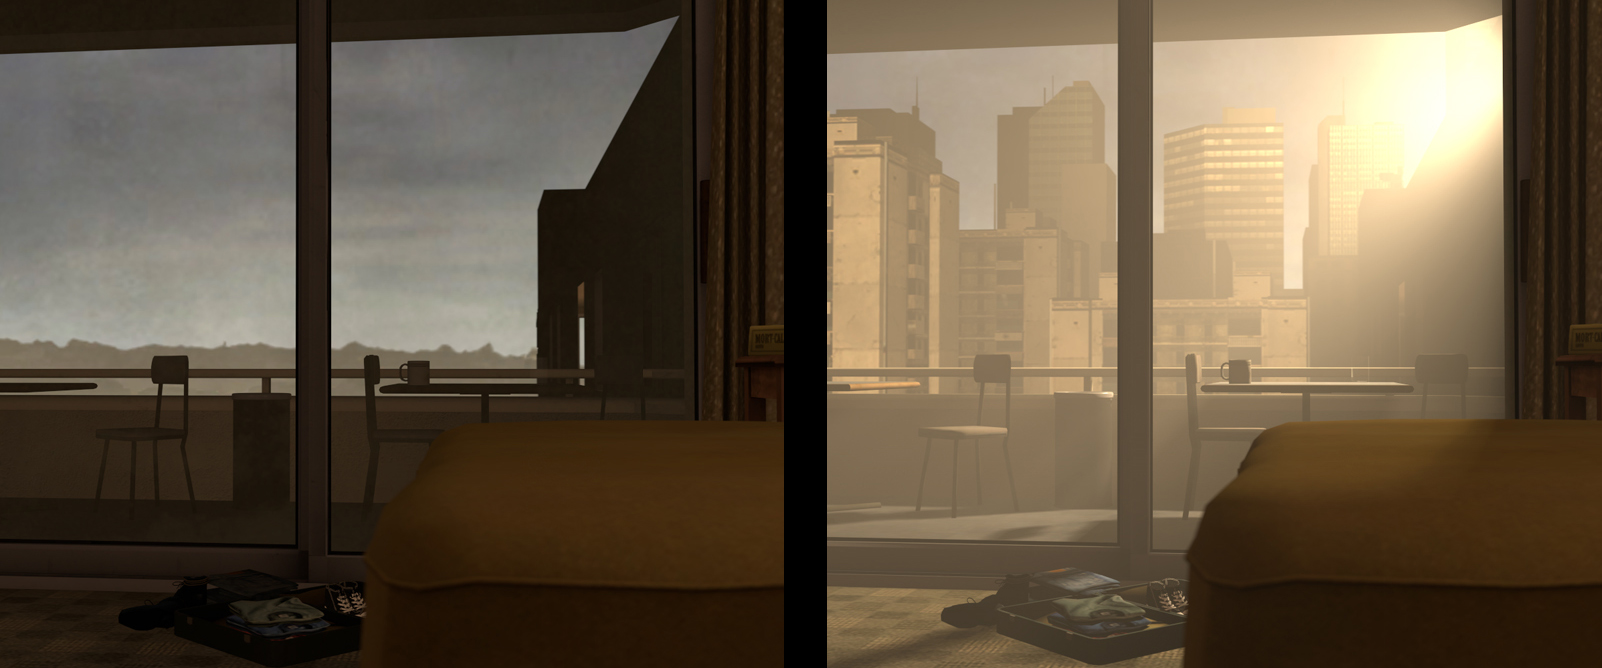 SFM – Creative Use of 3D Skyboxes 5 – Of Secrets